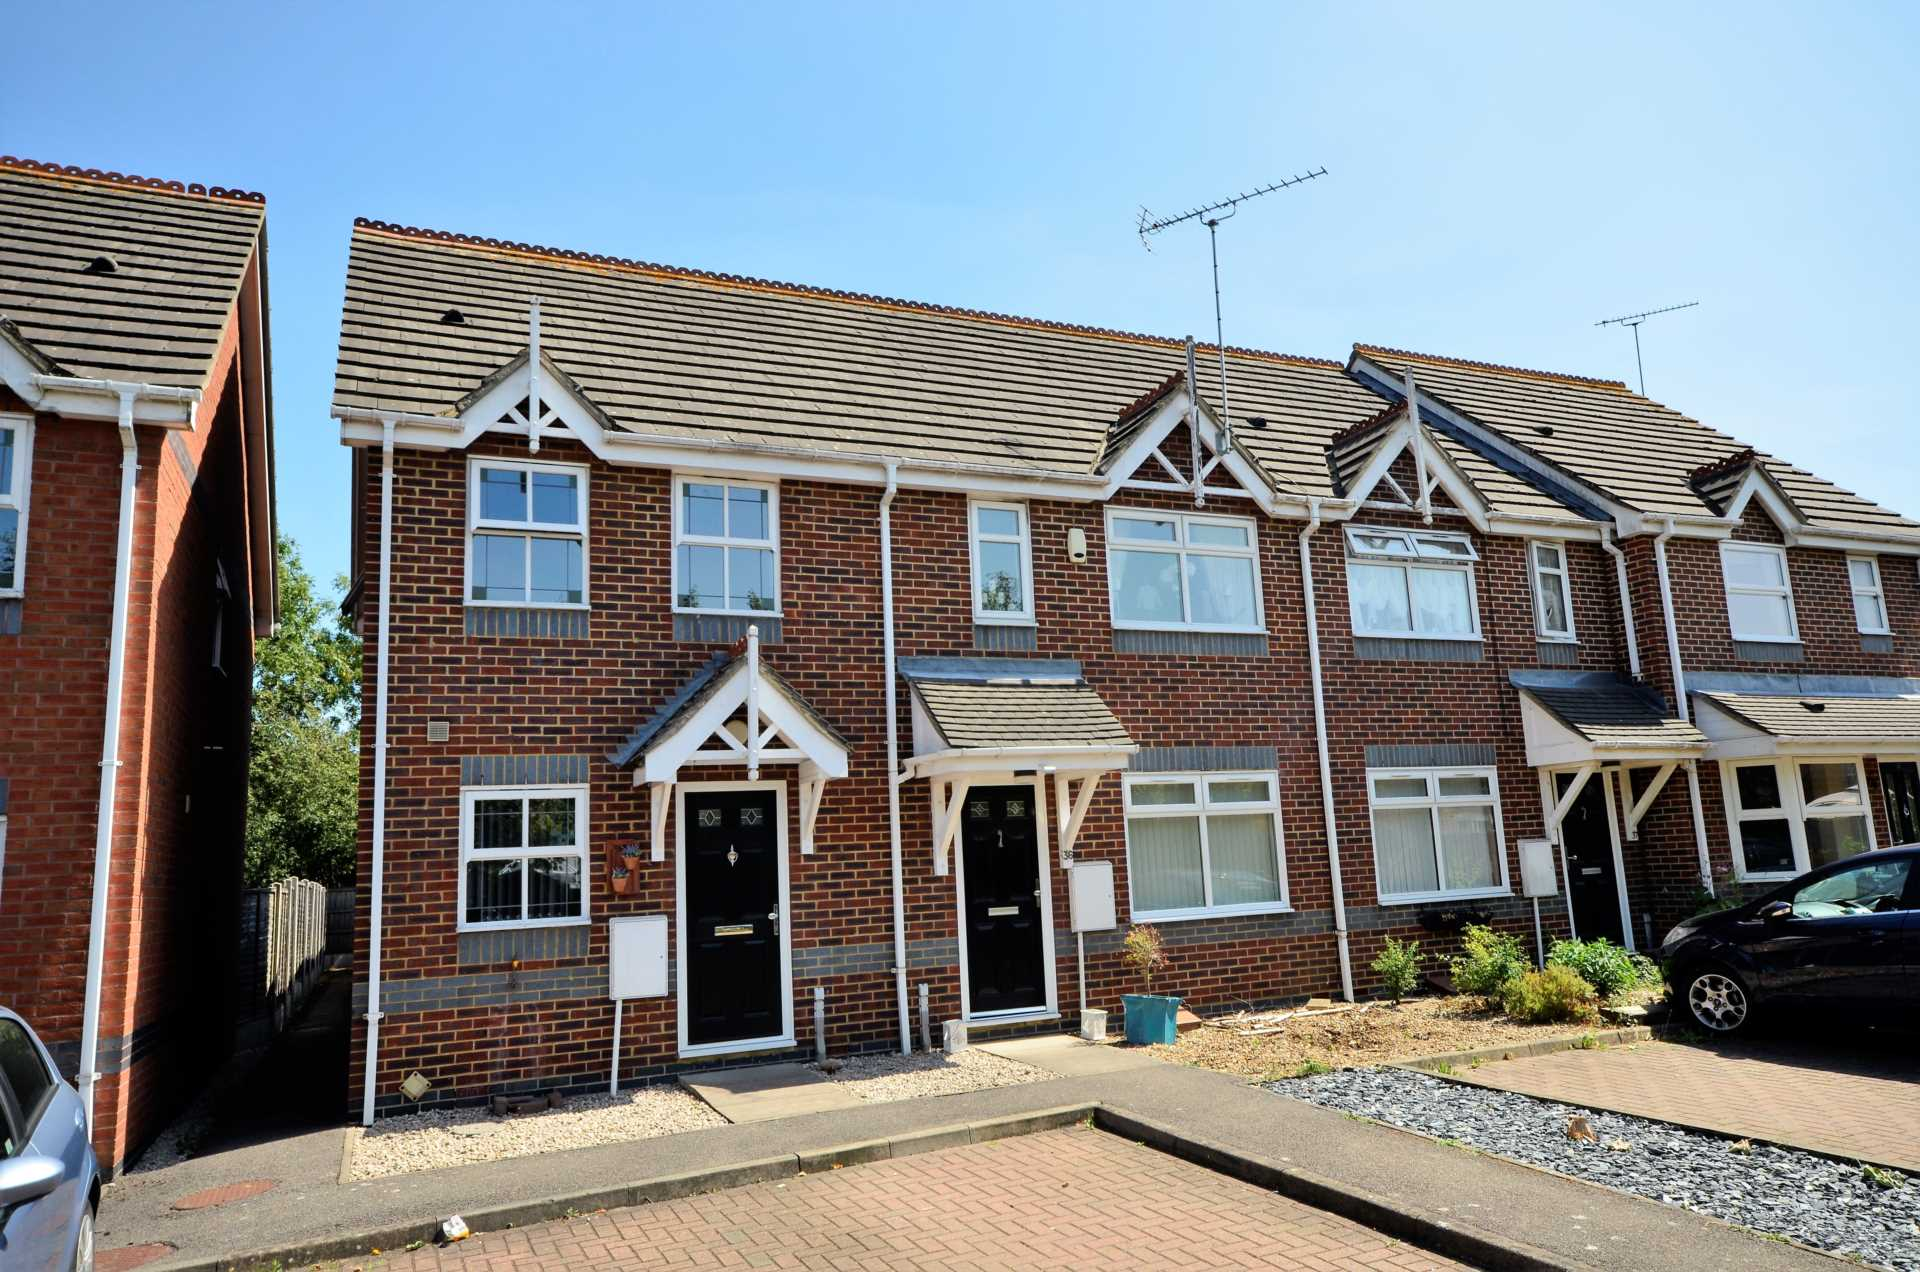 Ruthven Close, Wickford, Image 10